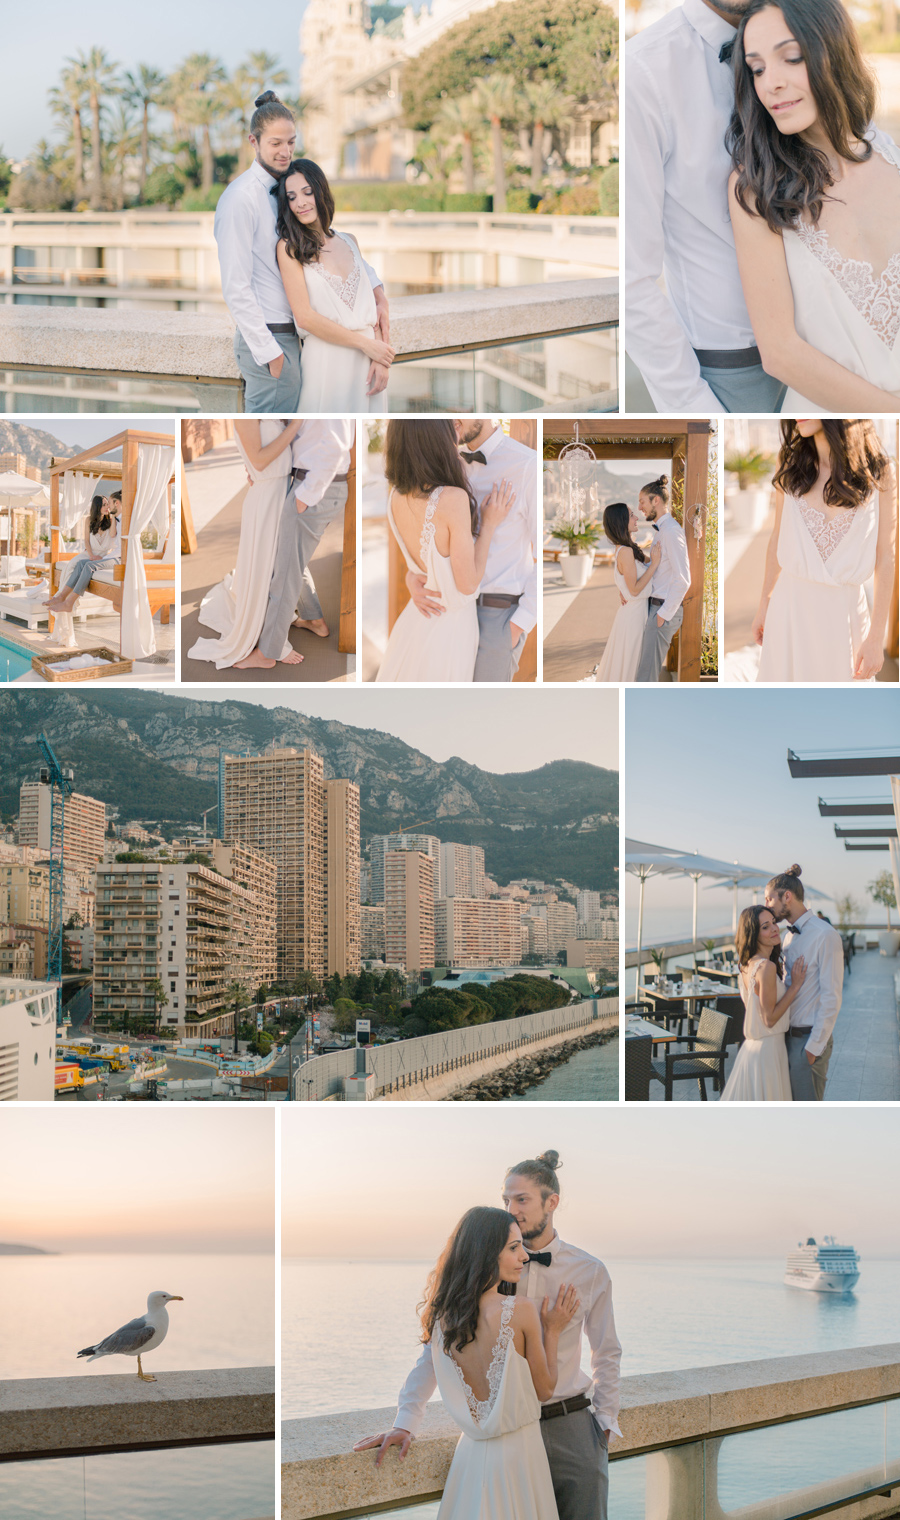 wedding fairmont monaco photographer